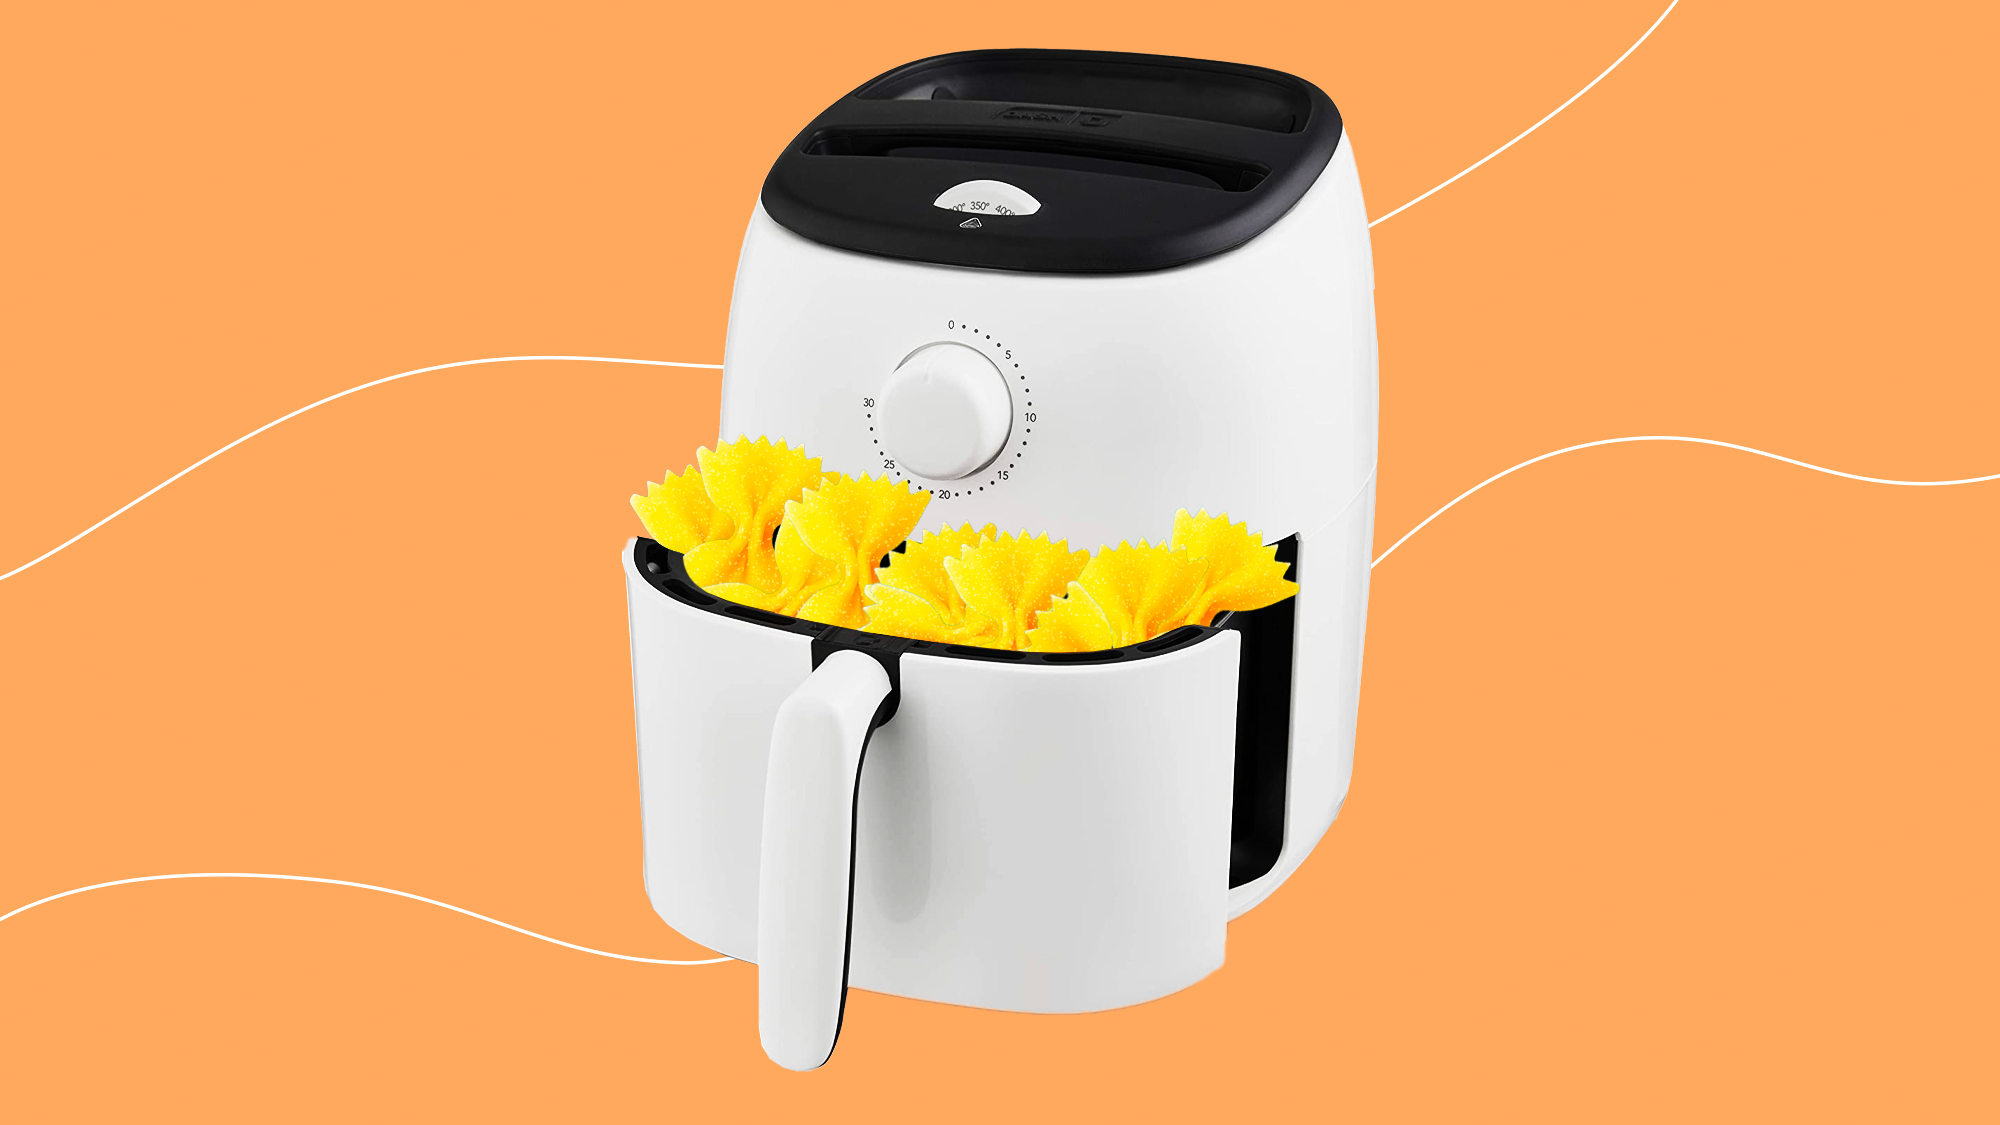 Bow tie pasta in an air-fryer on a designed background